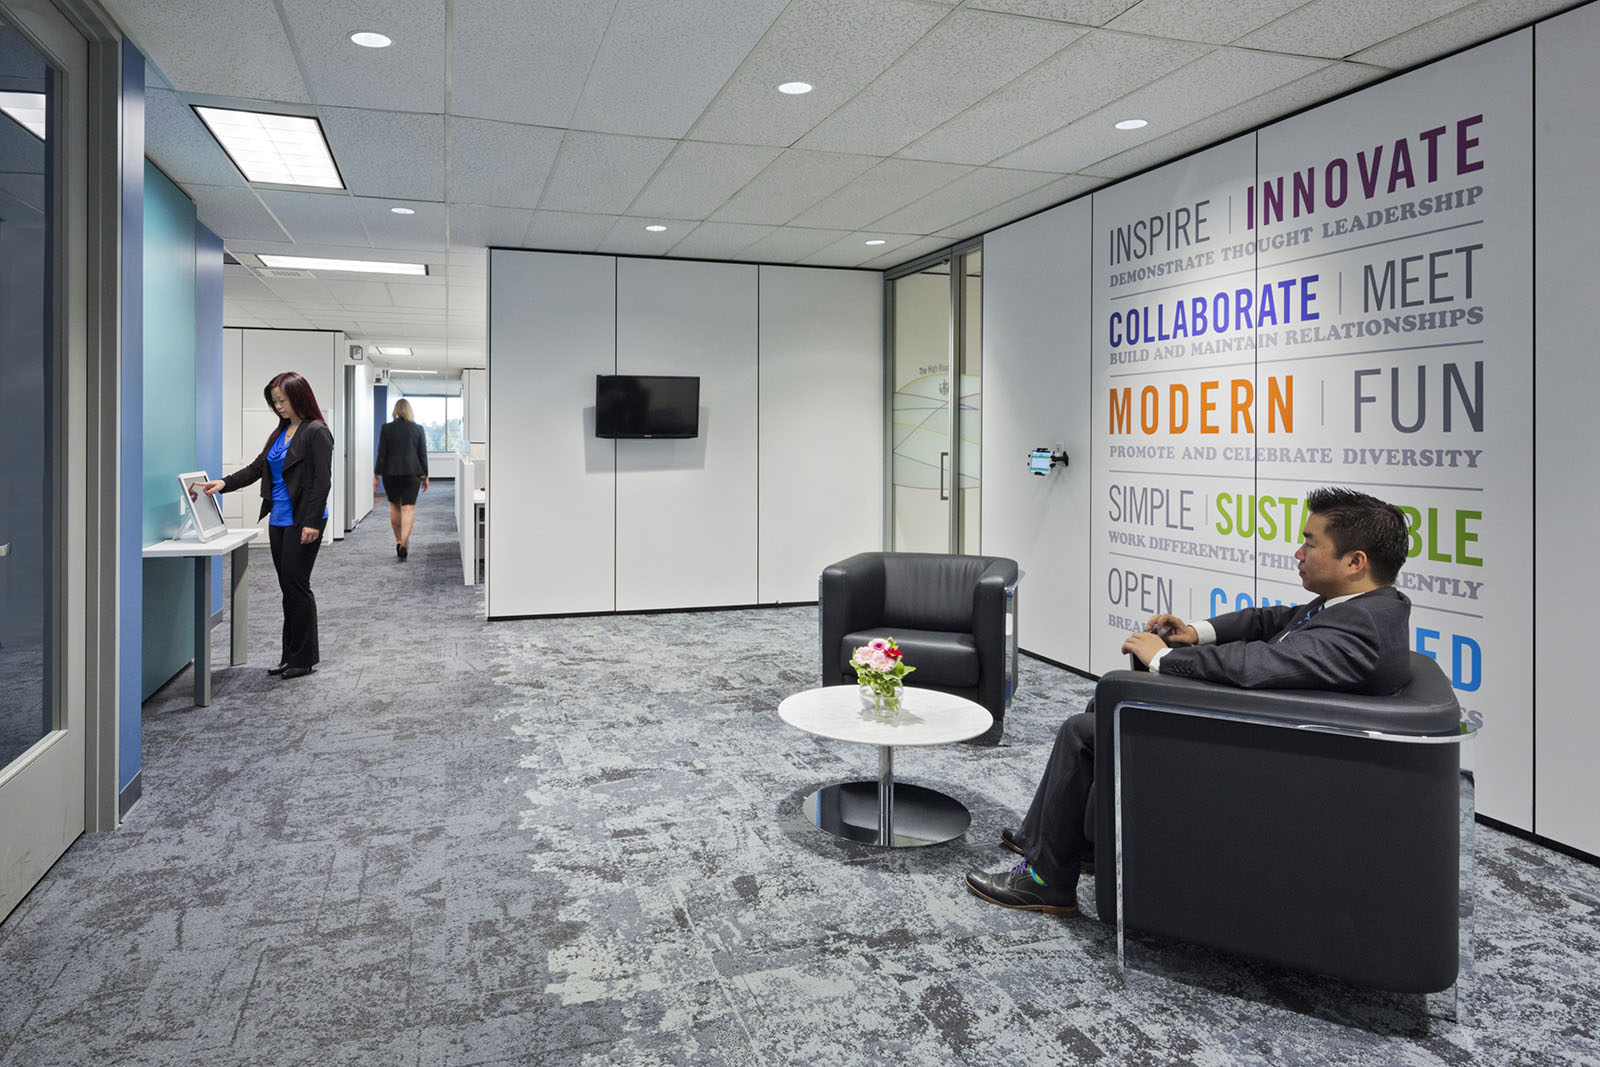 An office waiting area with a male businessman seated and two female figures.